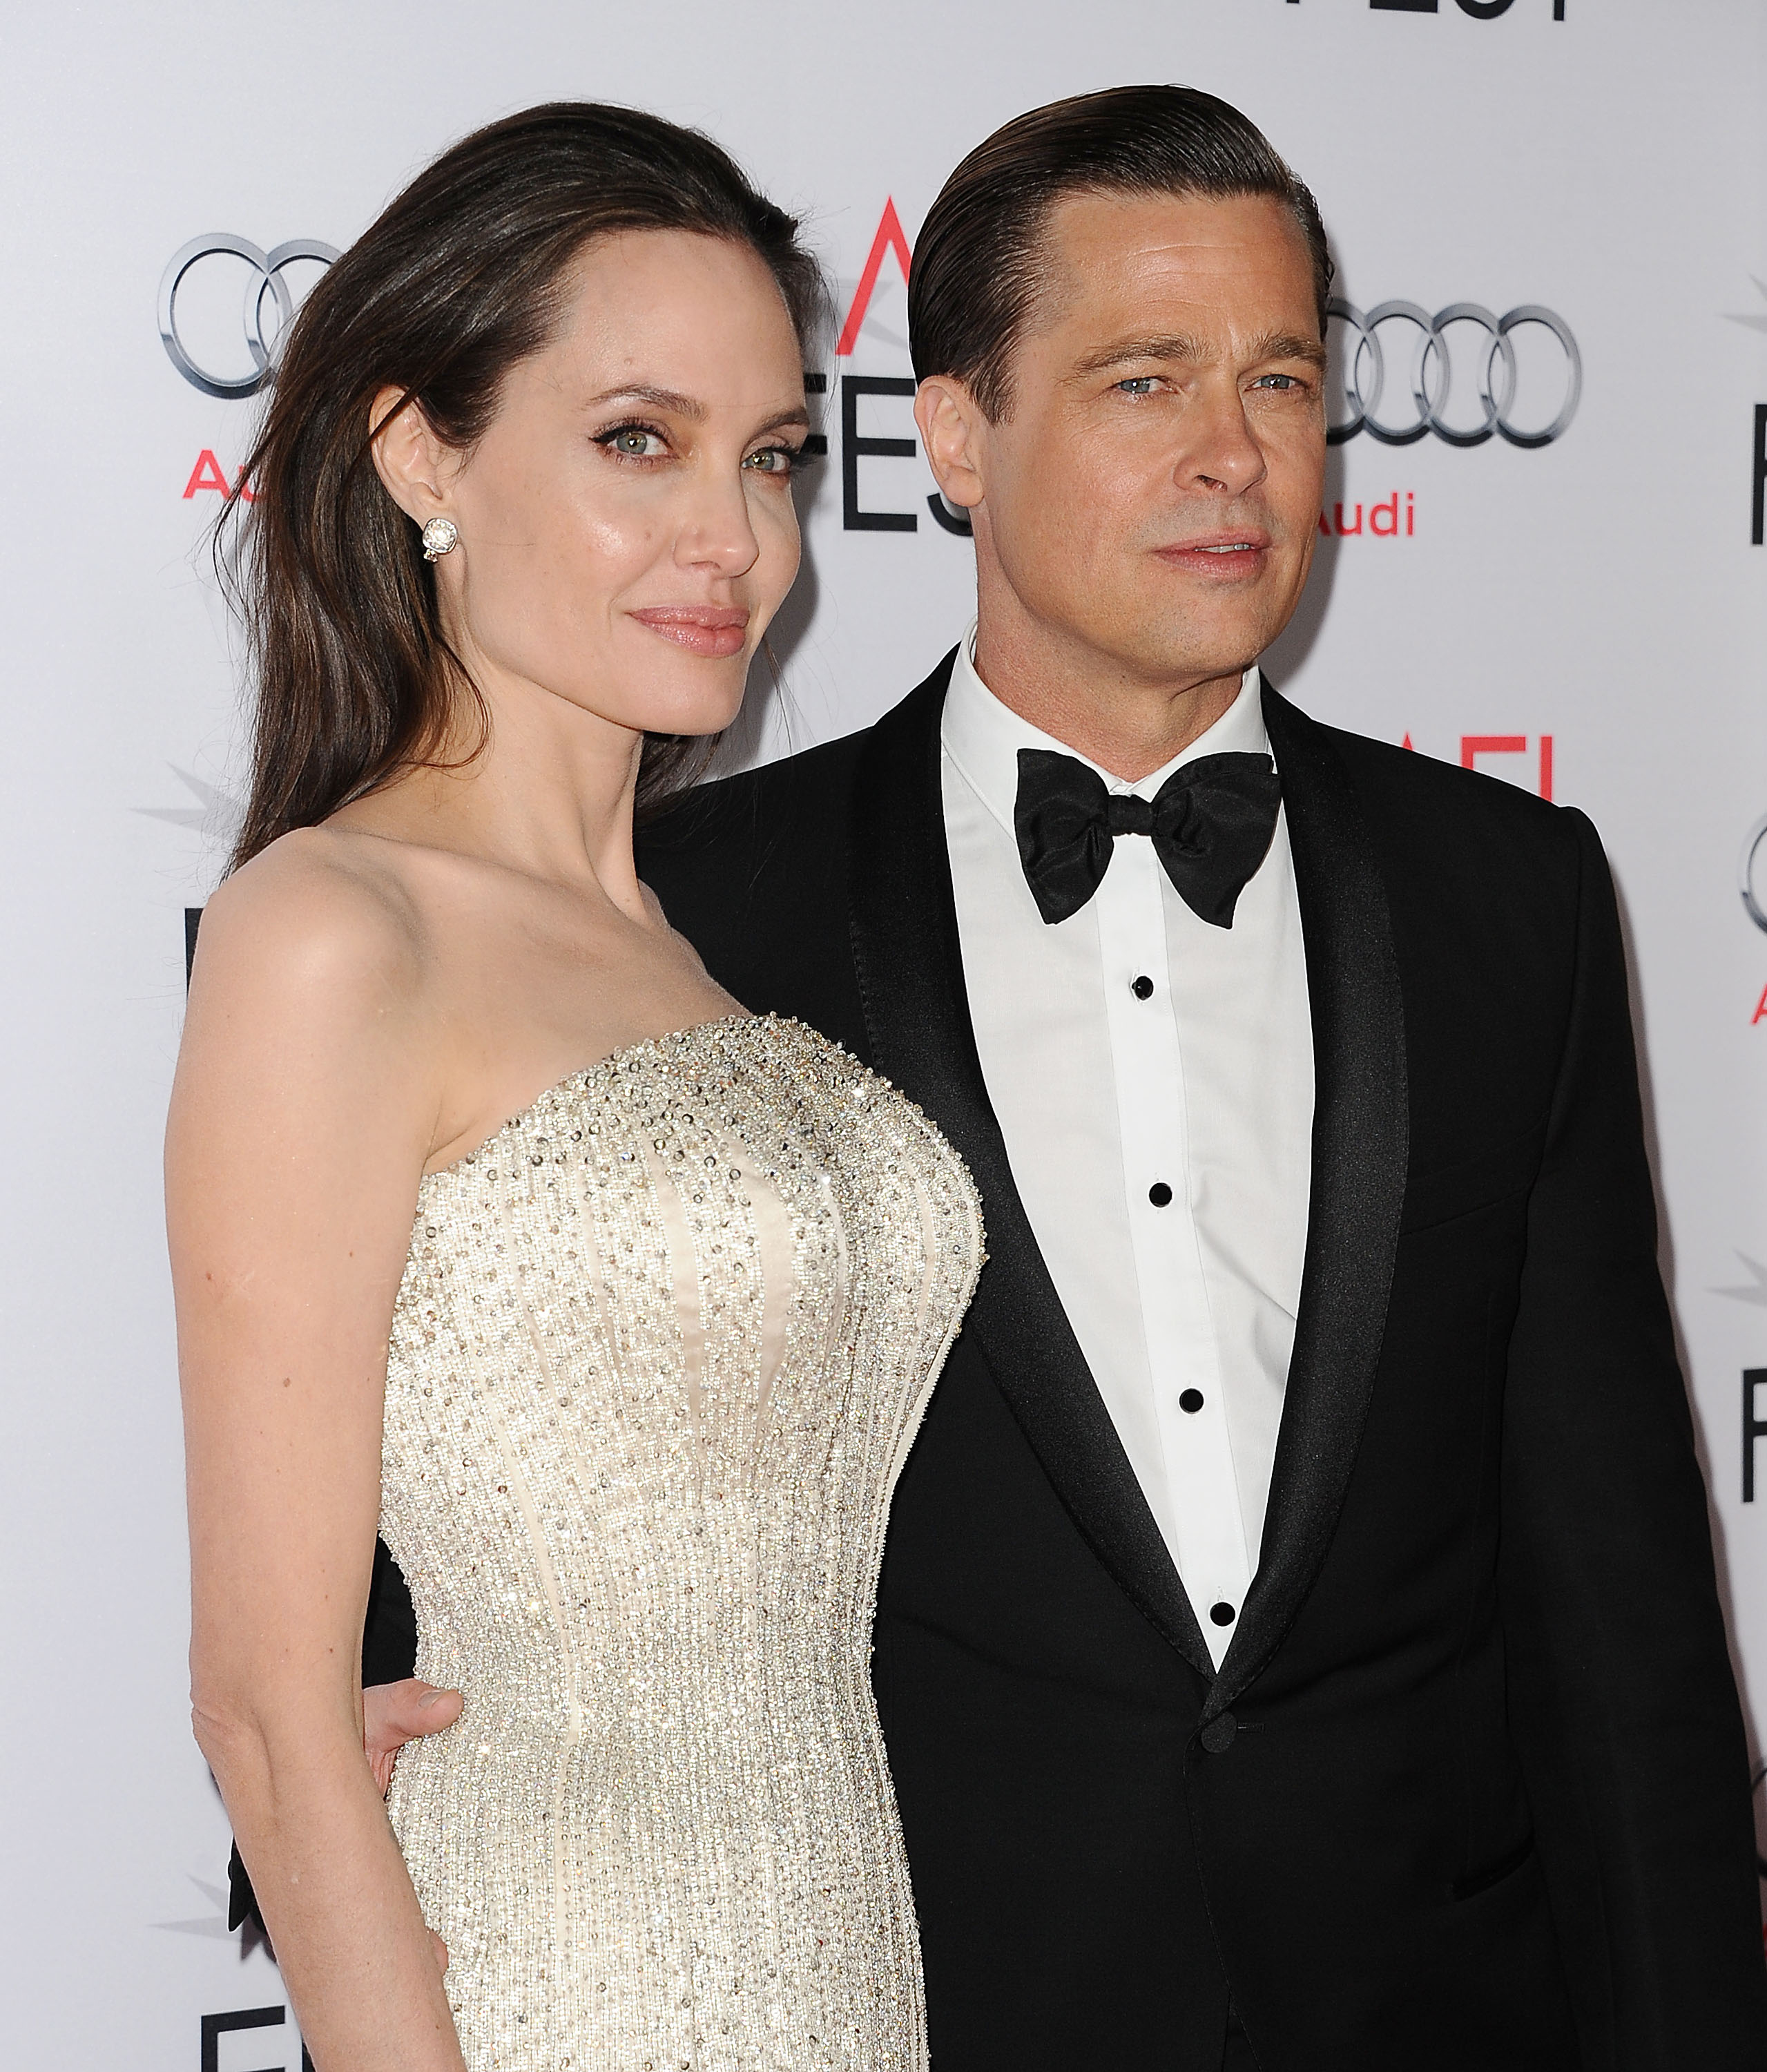 Angelina-Jolie-Talks-Being-Brad-Pitts-Boss-On-By-The-Sea